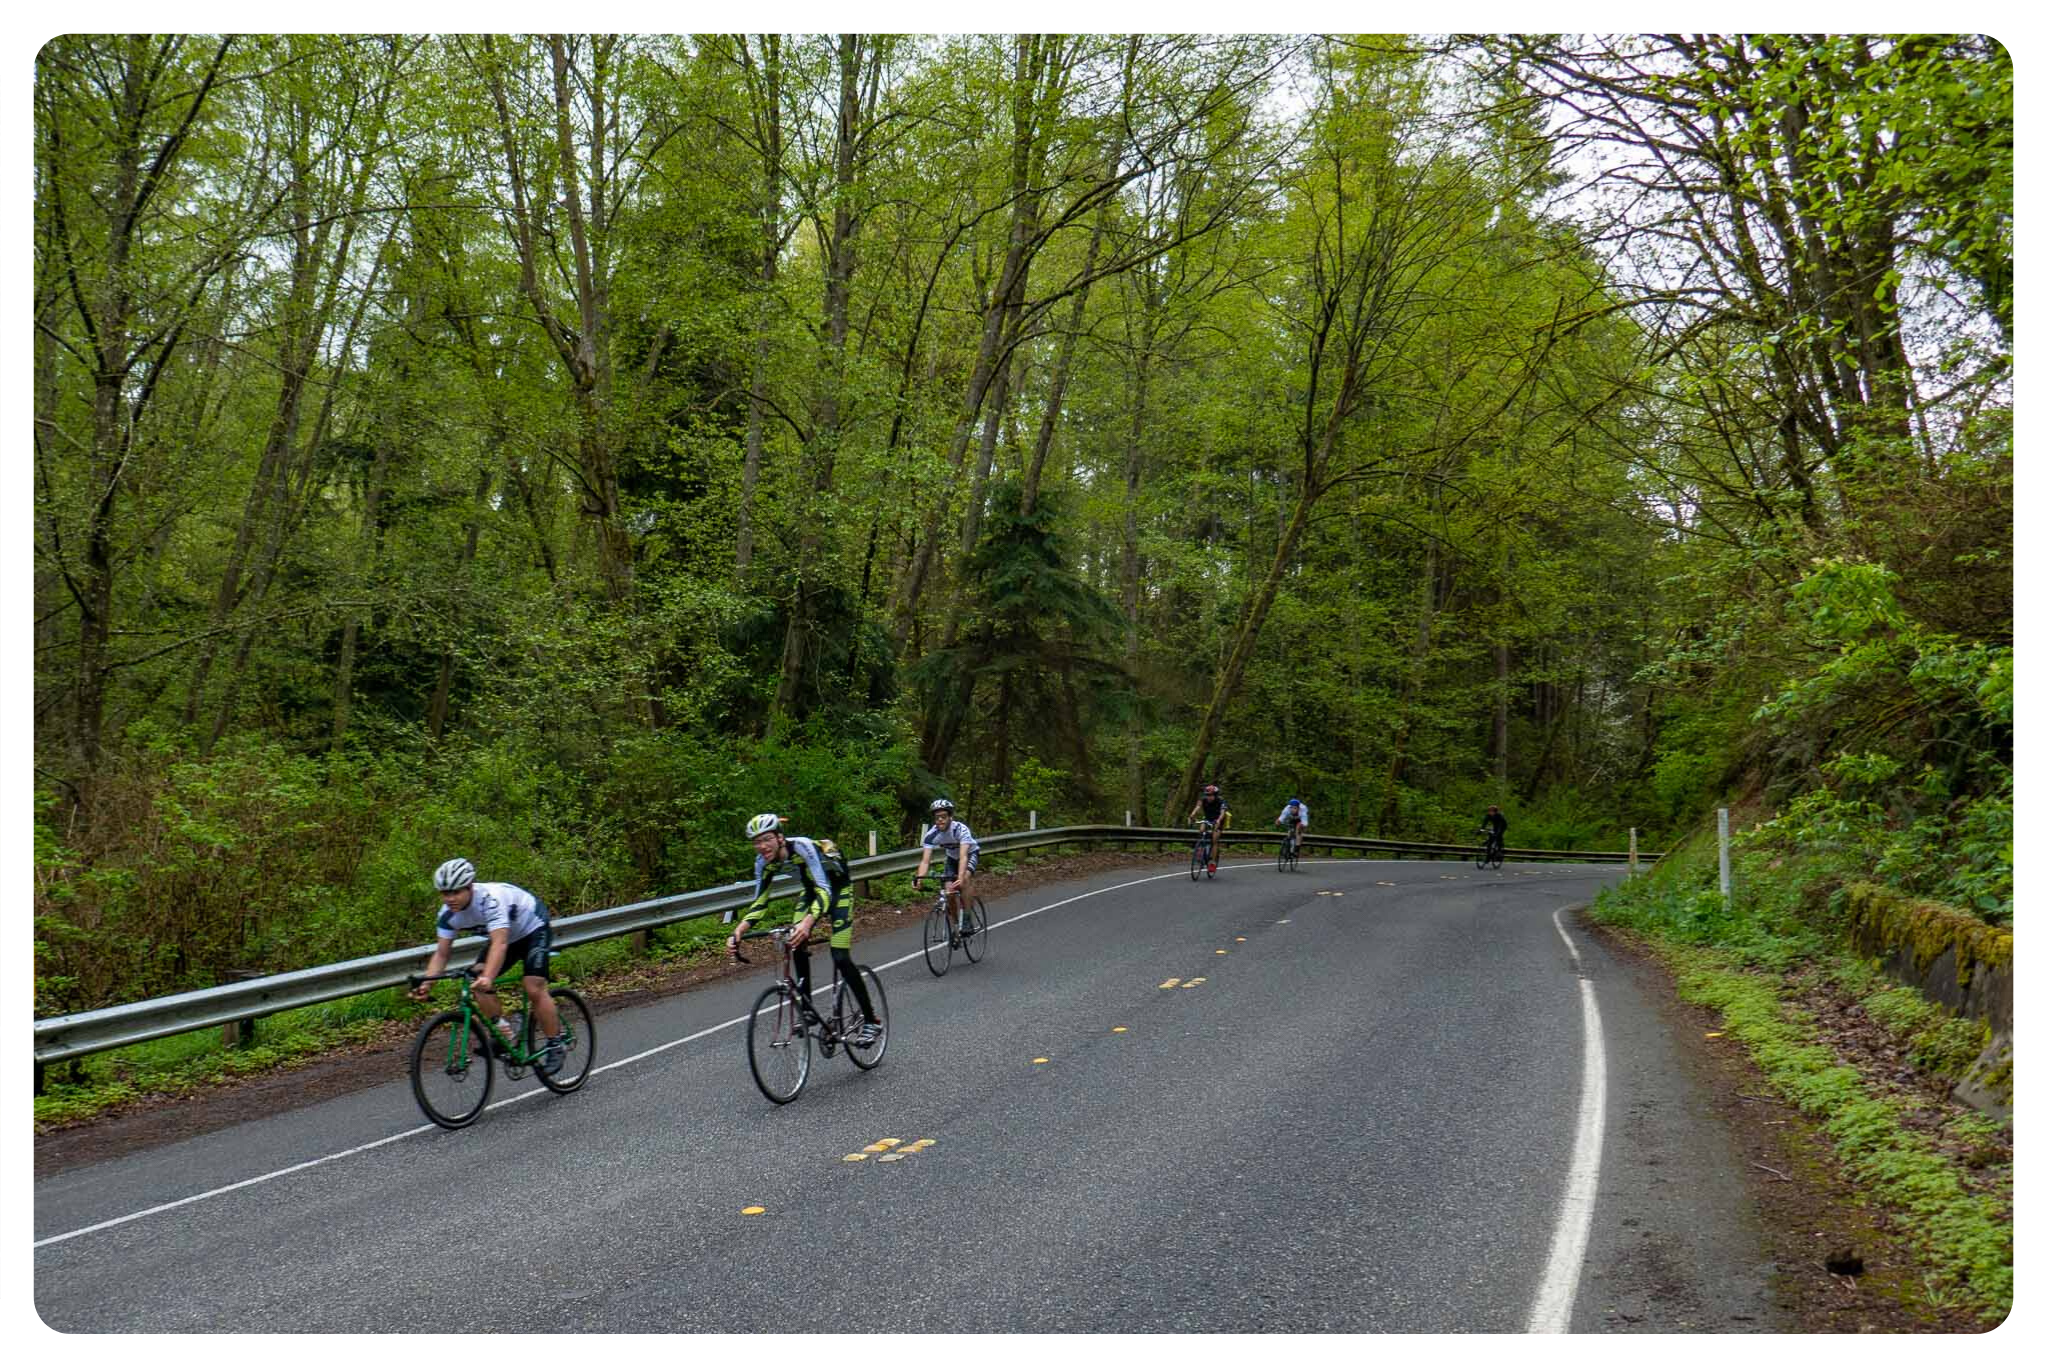 Several riders cruise along a paved road in a forested area